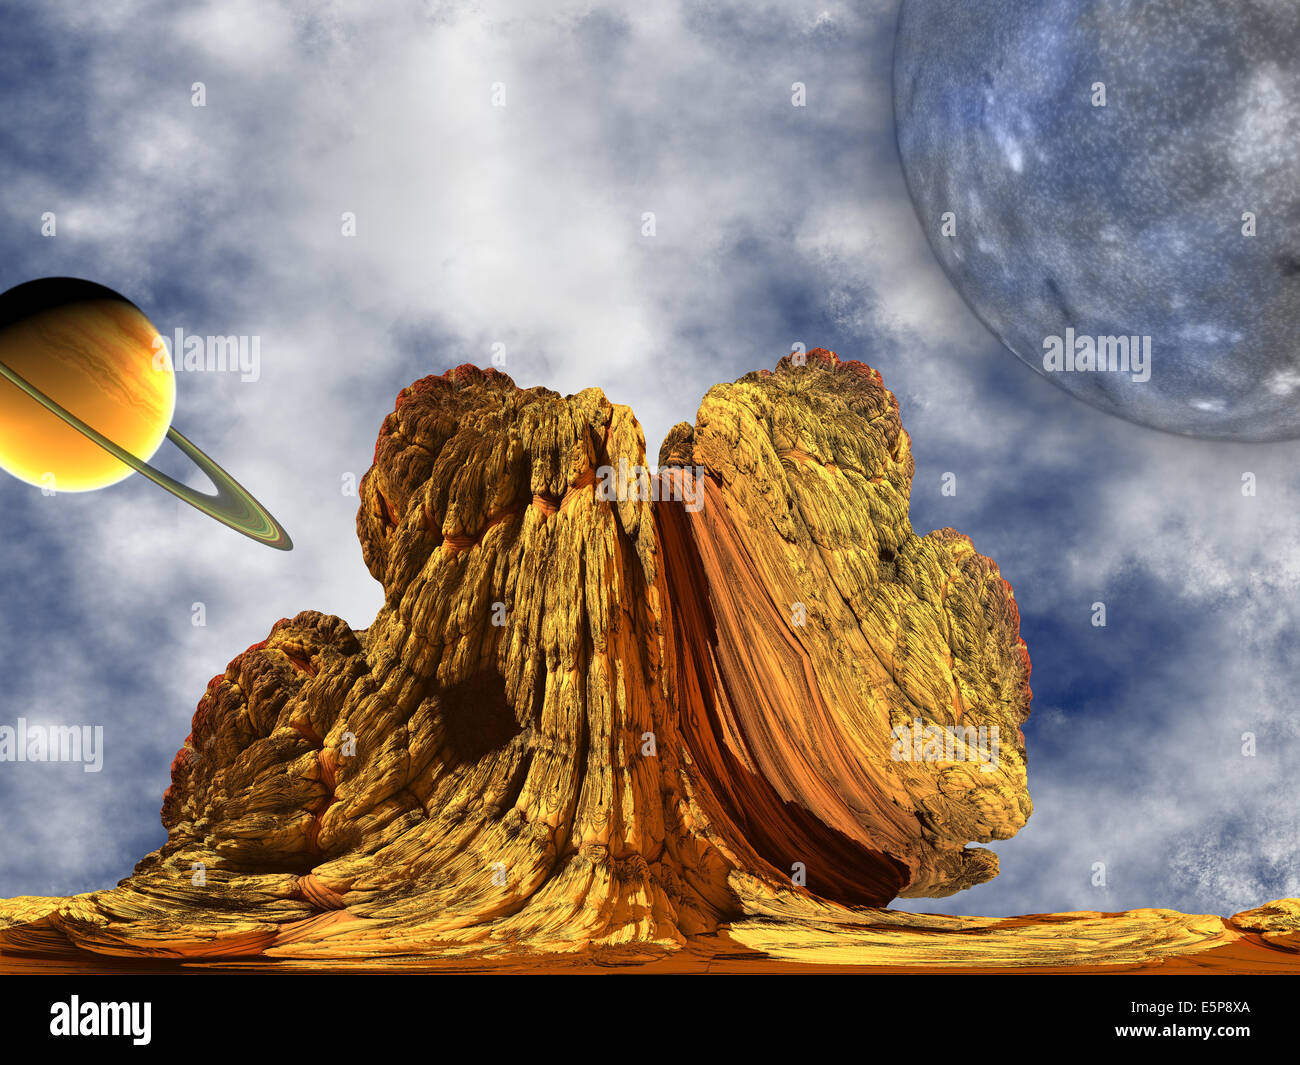 Alien Rock with sky background and two planets - Stock Image